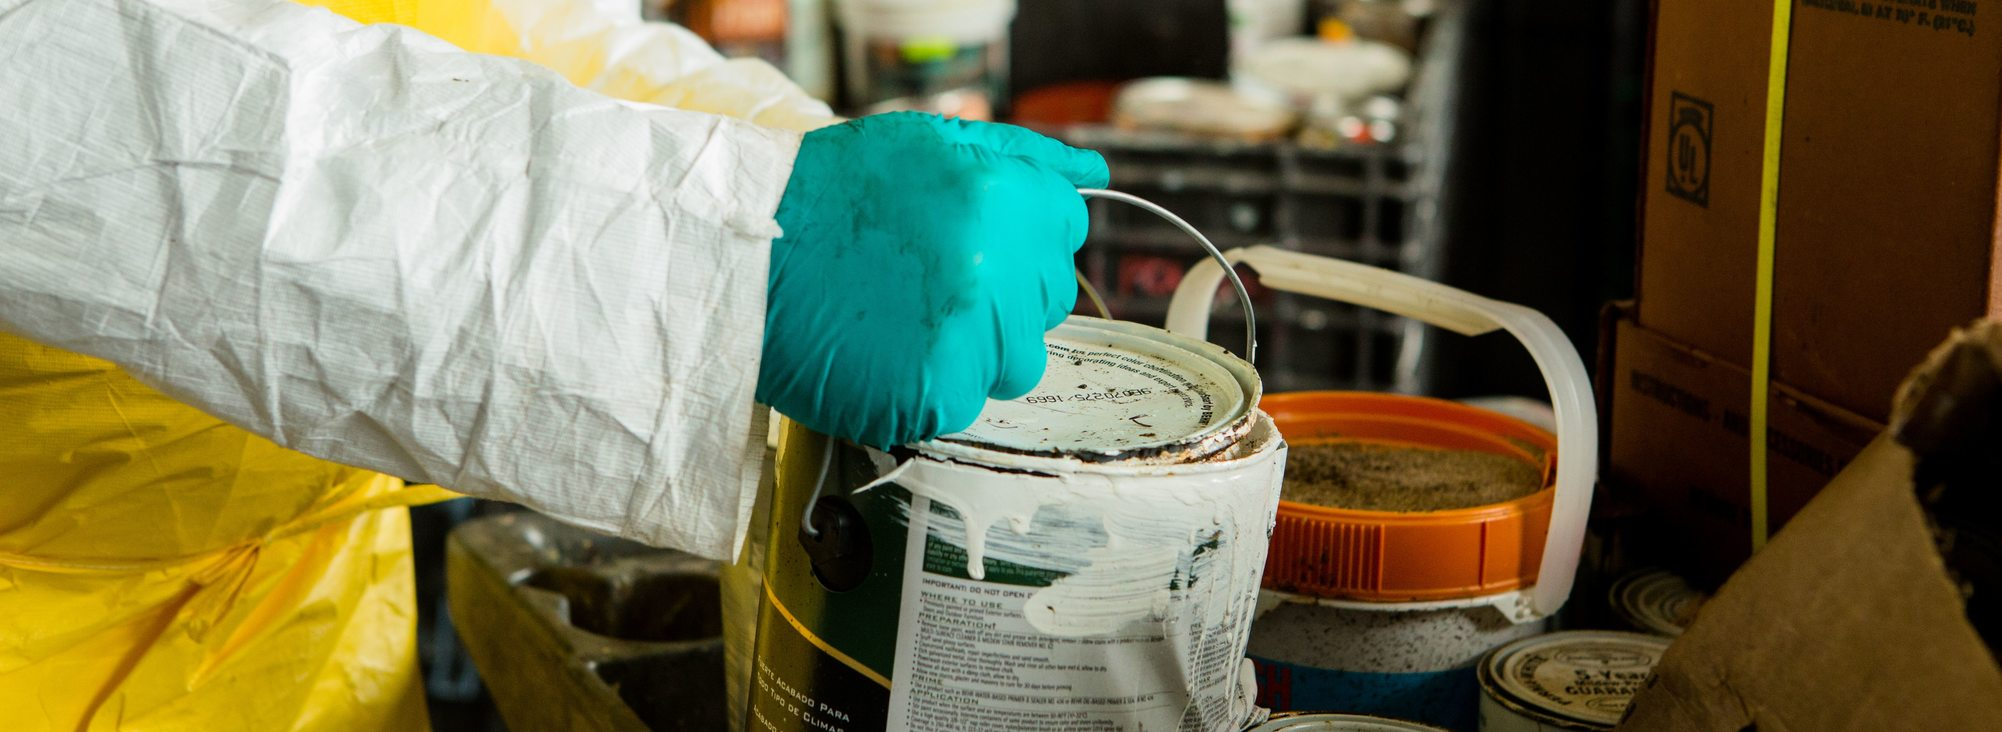 used can of paint being held by a hazardous waste technician